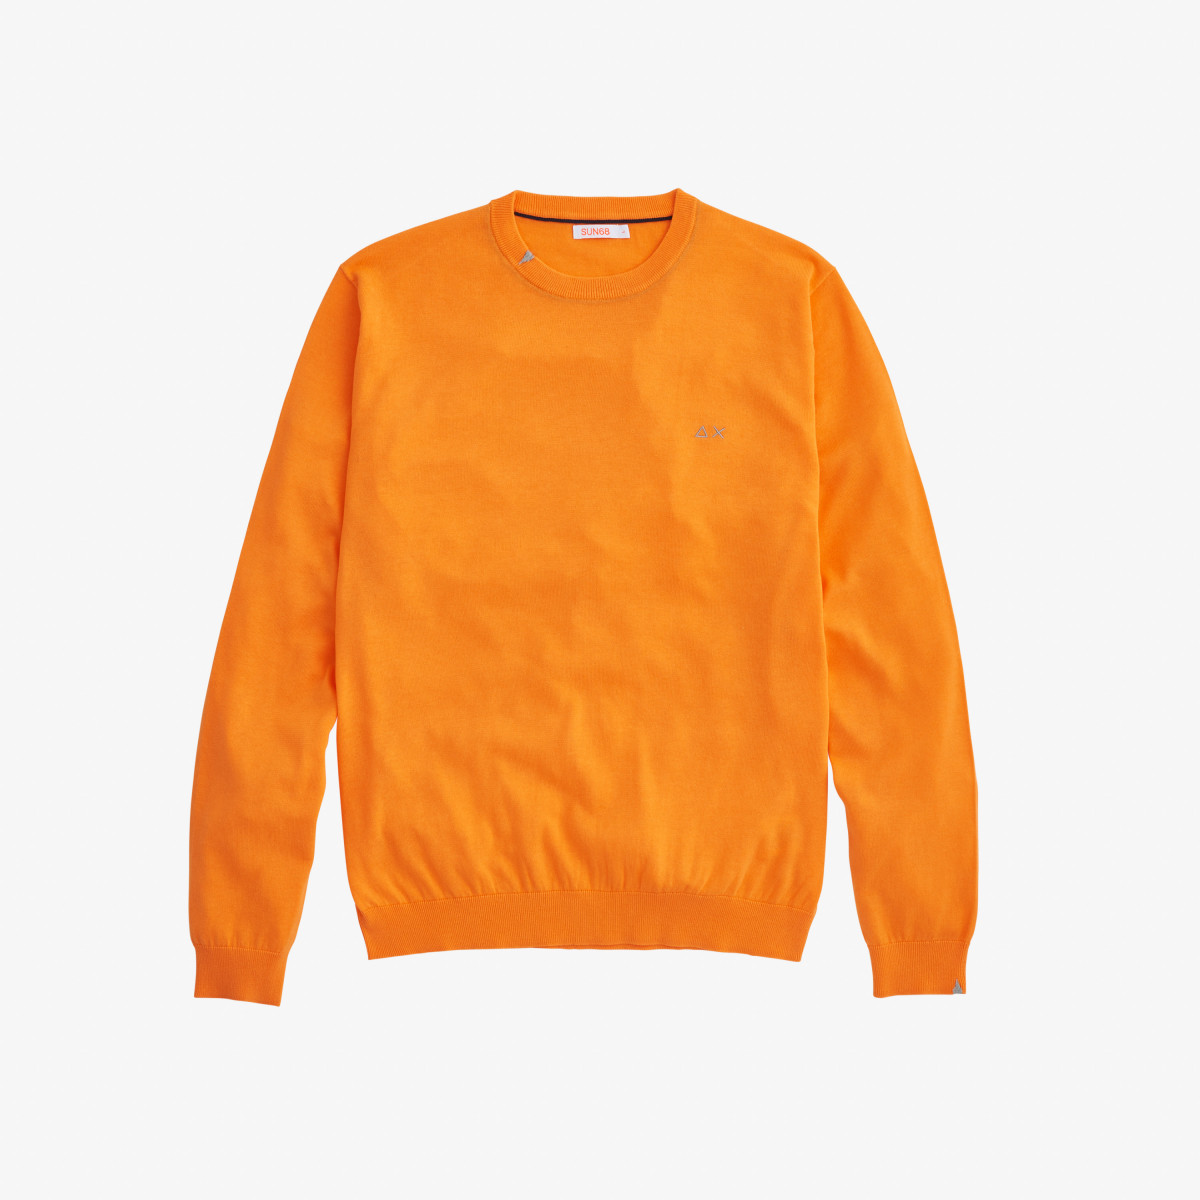 ROUND NECK SOLID CARROT